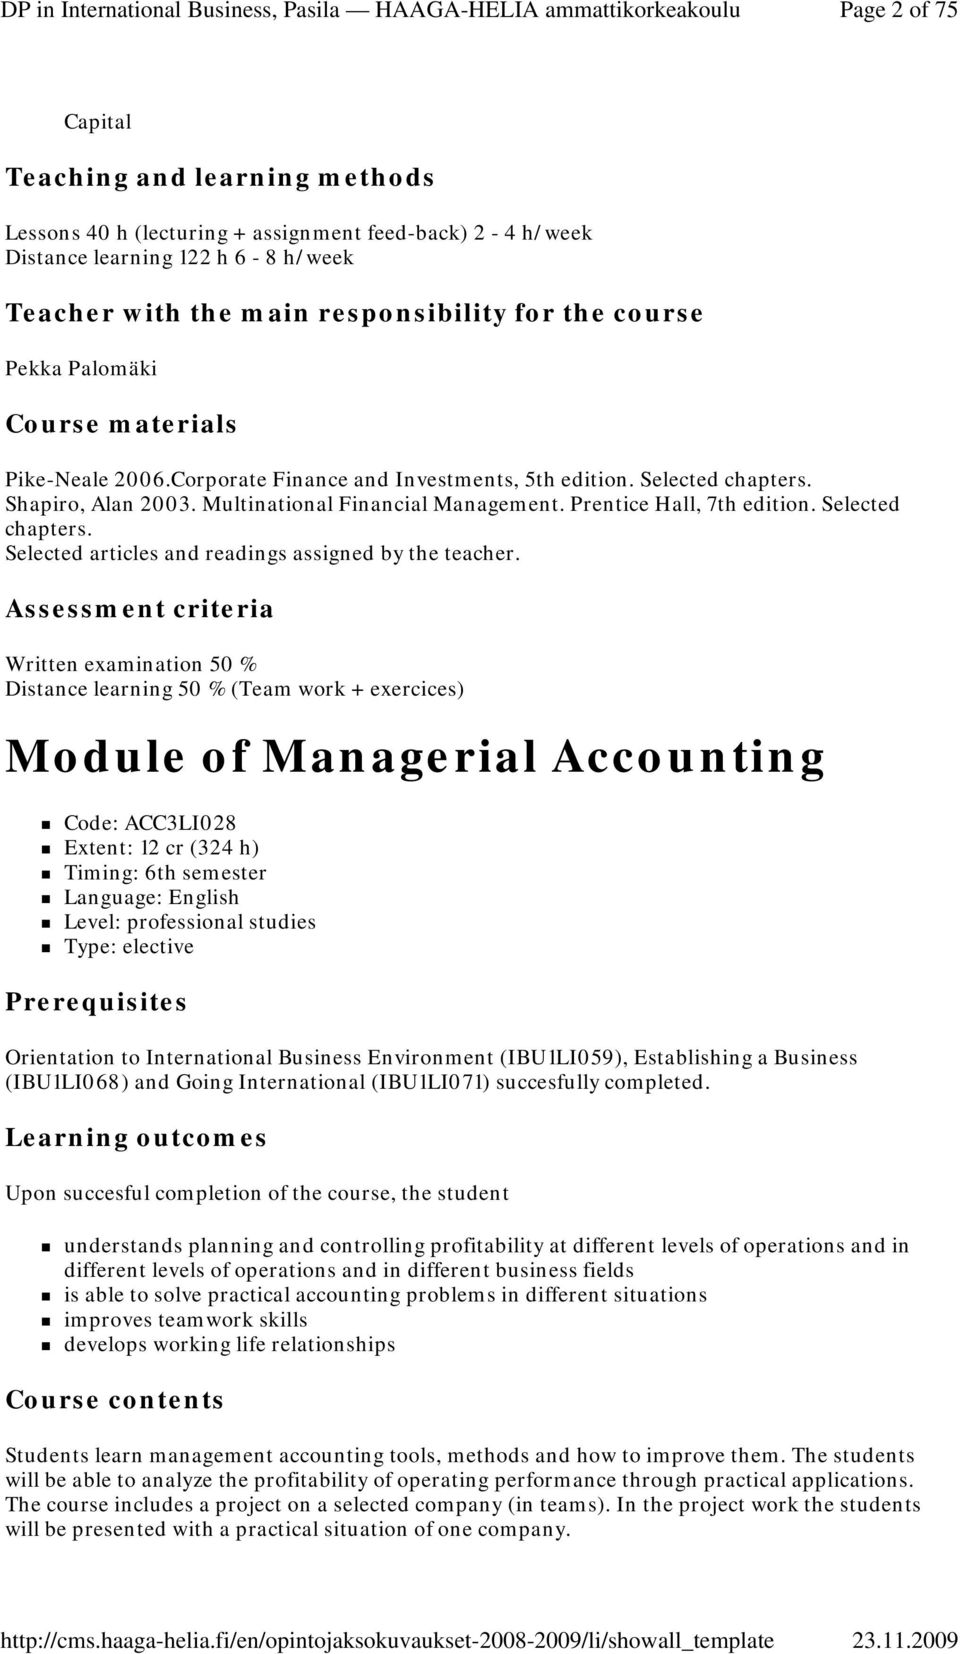 Written examination 50 % Distance learning 50 % (Team work + exercices) Module of Managerial Accounting Code: ACC3LI028 Extent: 12 cr (324 h) Timing: 6th semester Language: English Level: